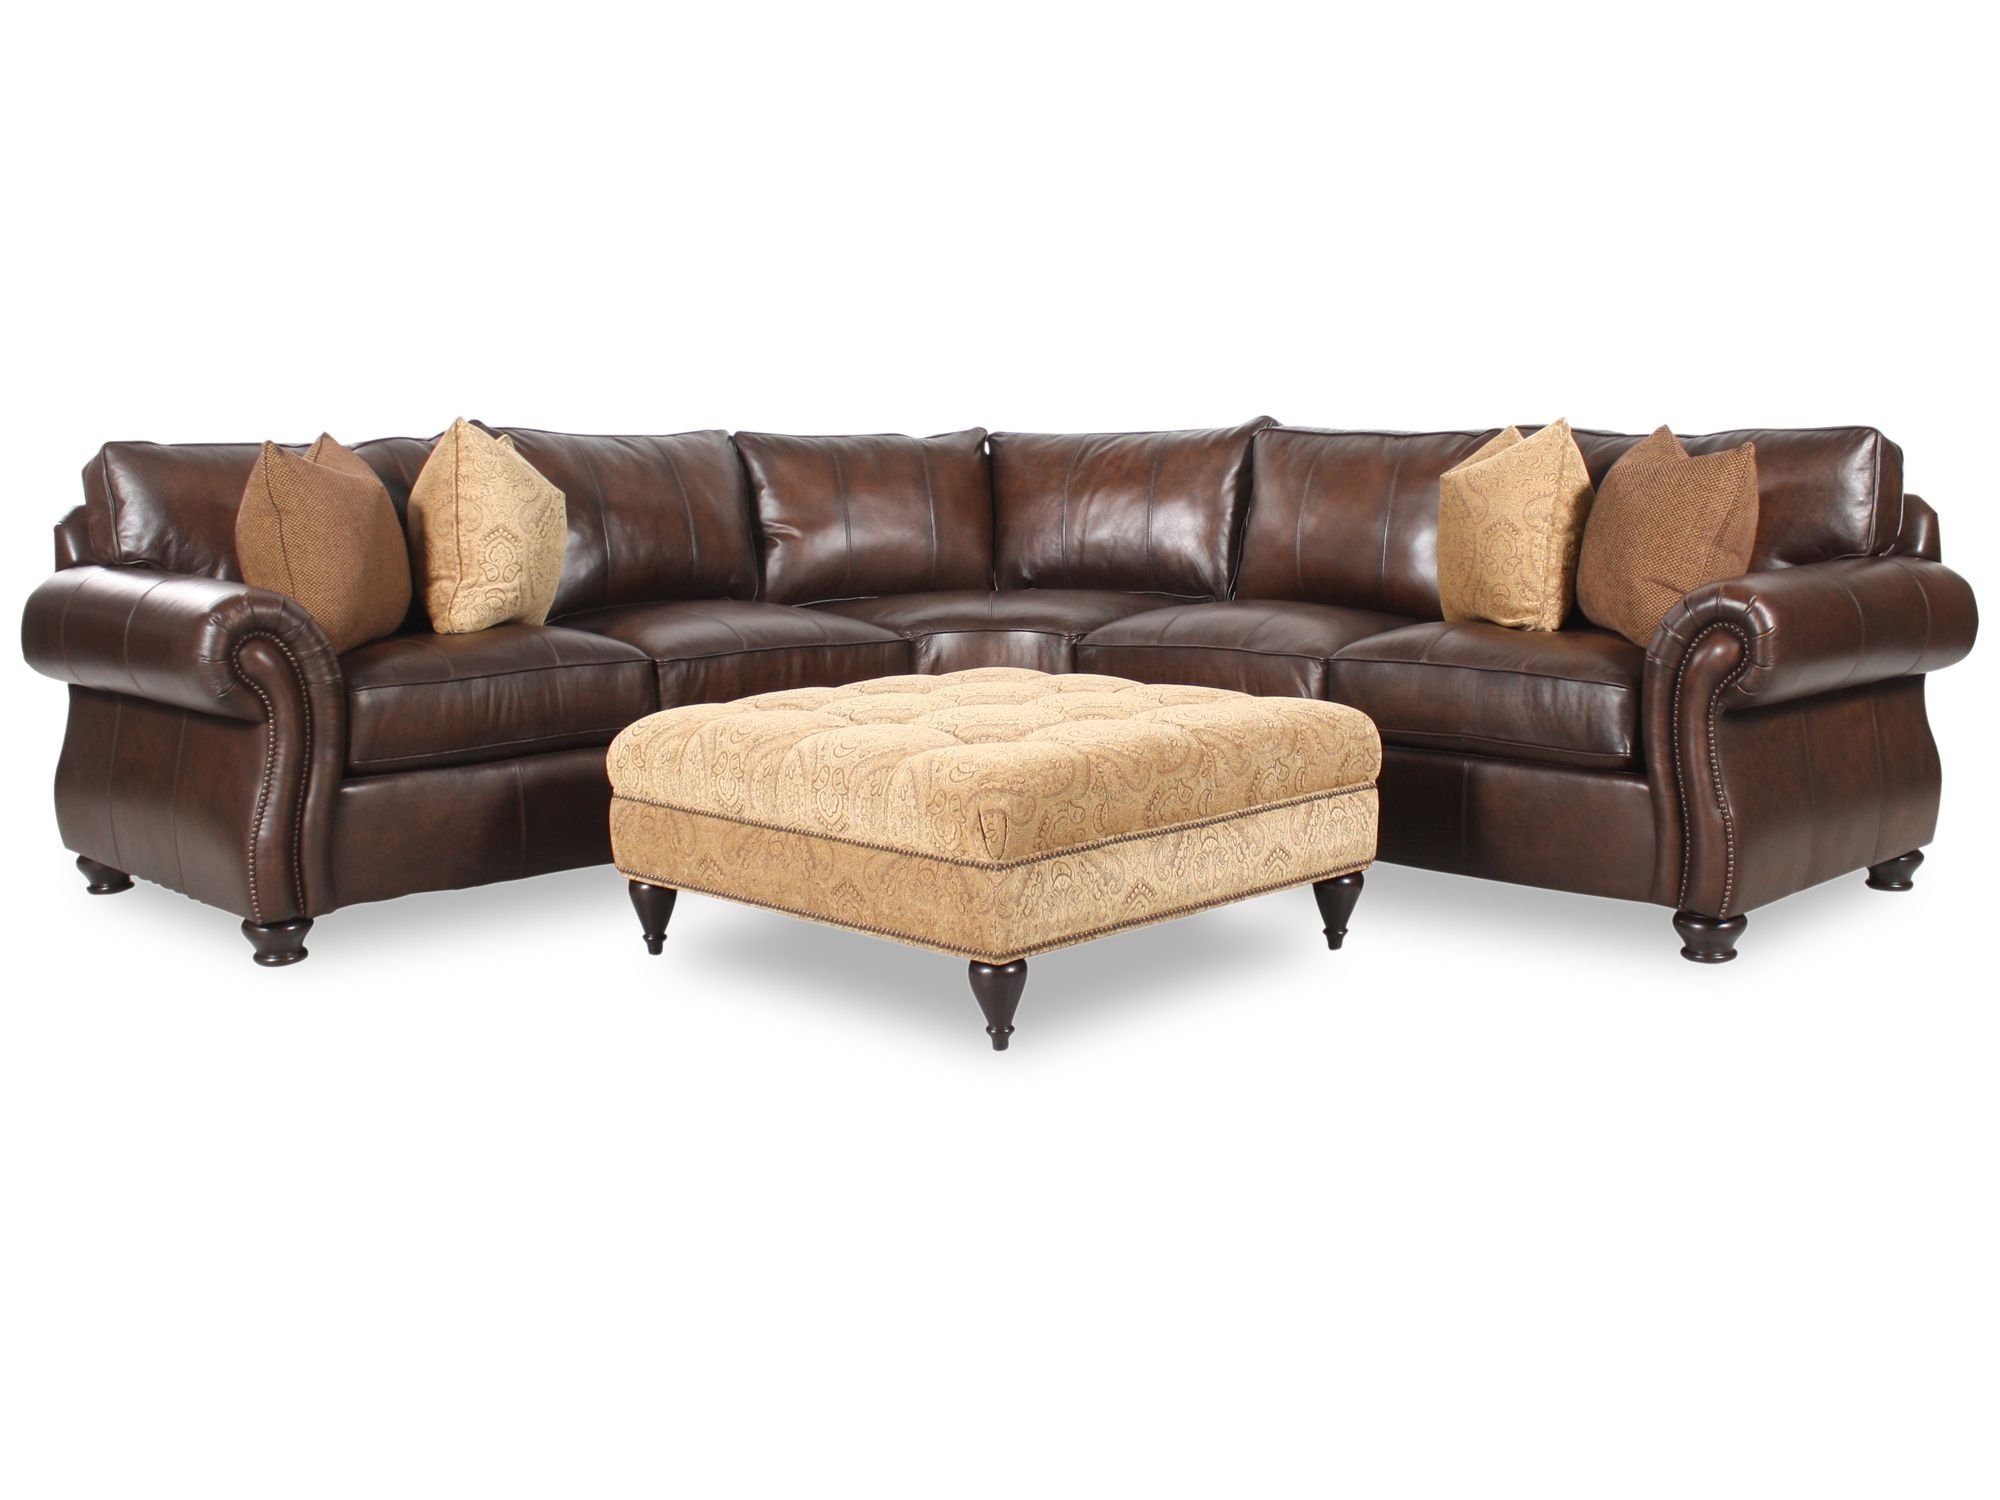 Oakville Outdoor Furniture The Best Oakville Sectional Sofas